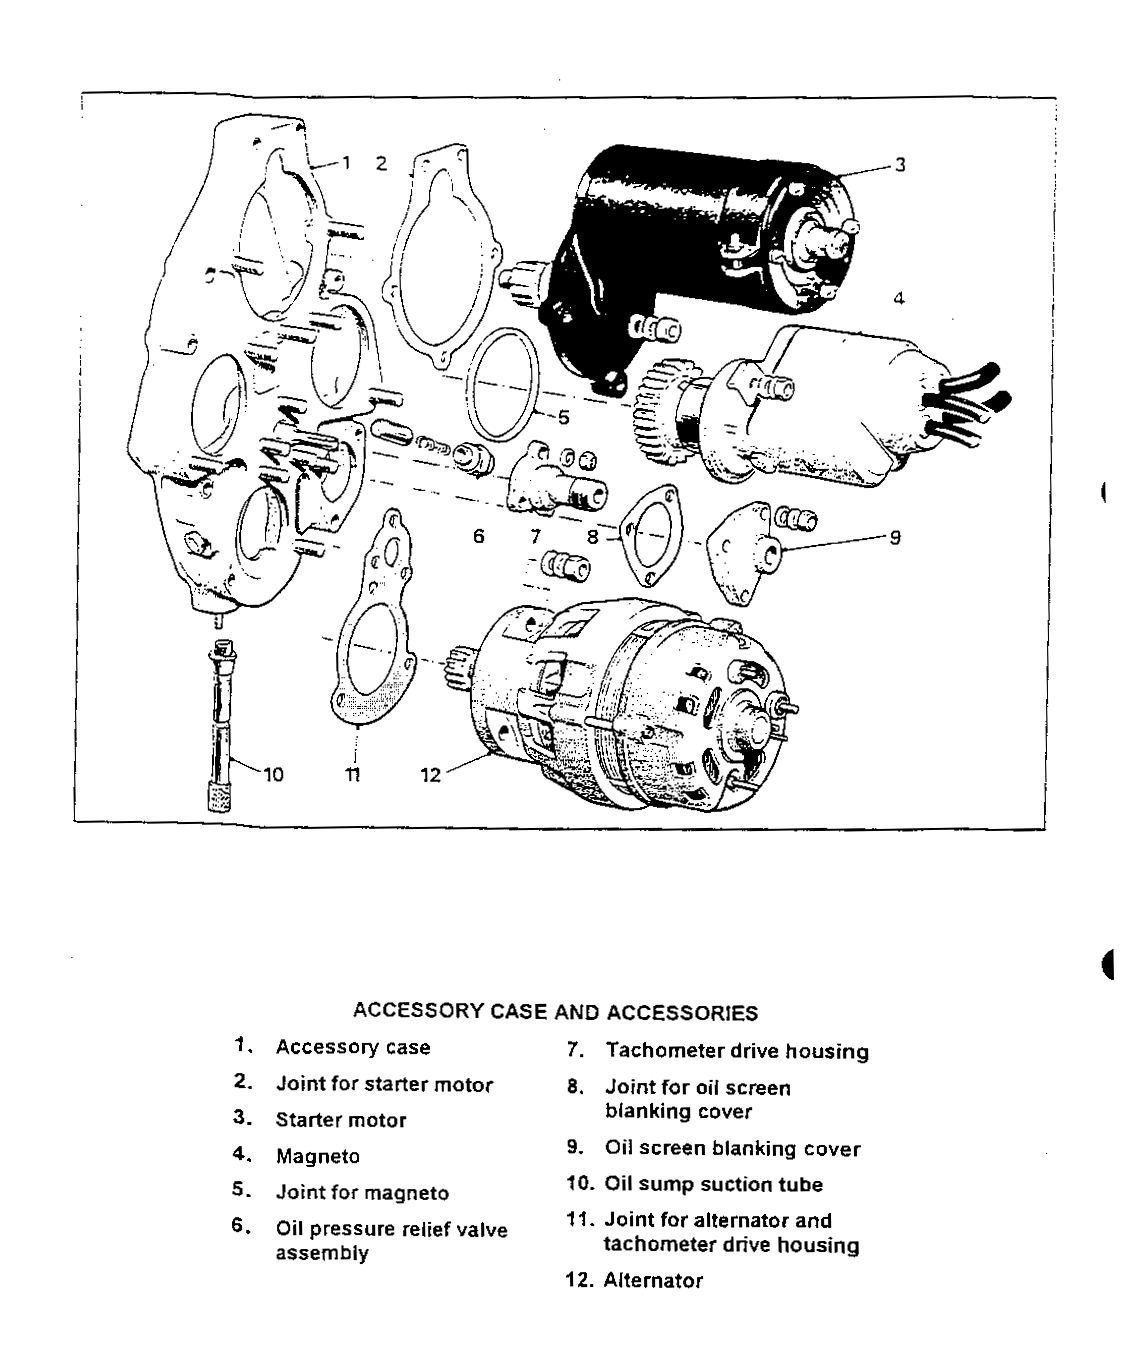 hight resolution of gear trains containing both spur and bevel type gears are used in the different types of engines for driving engine components and accessories